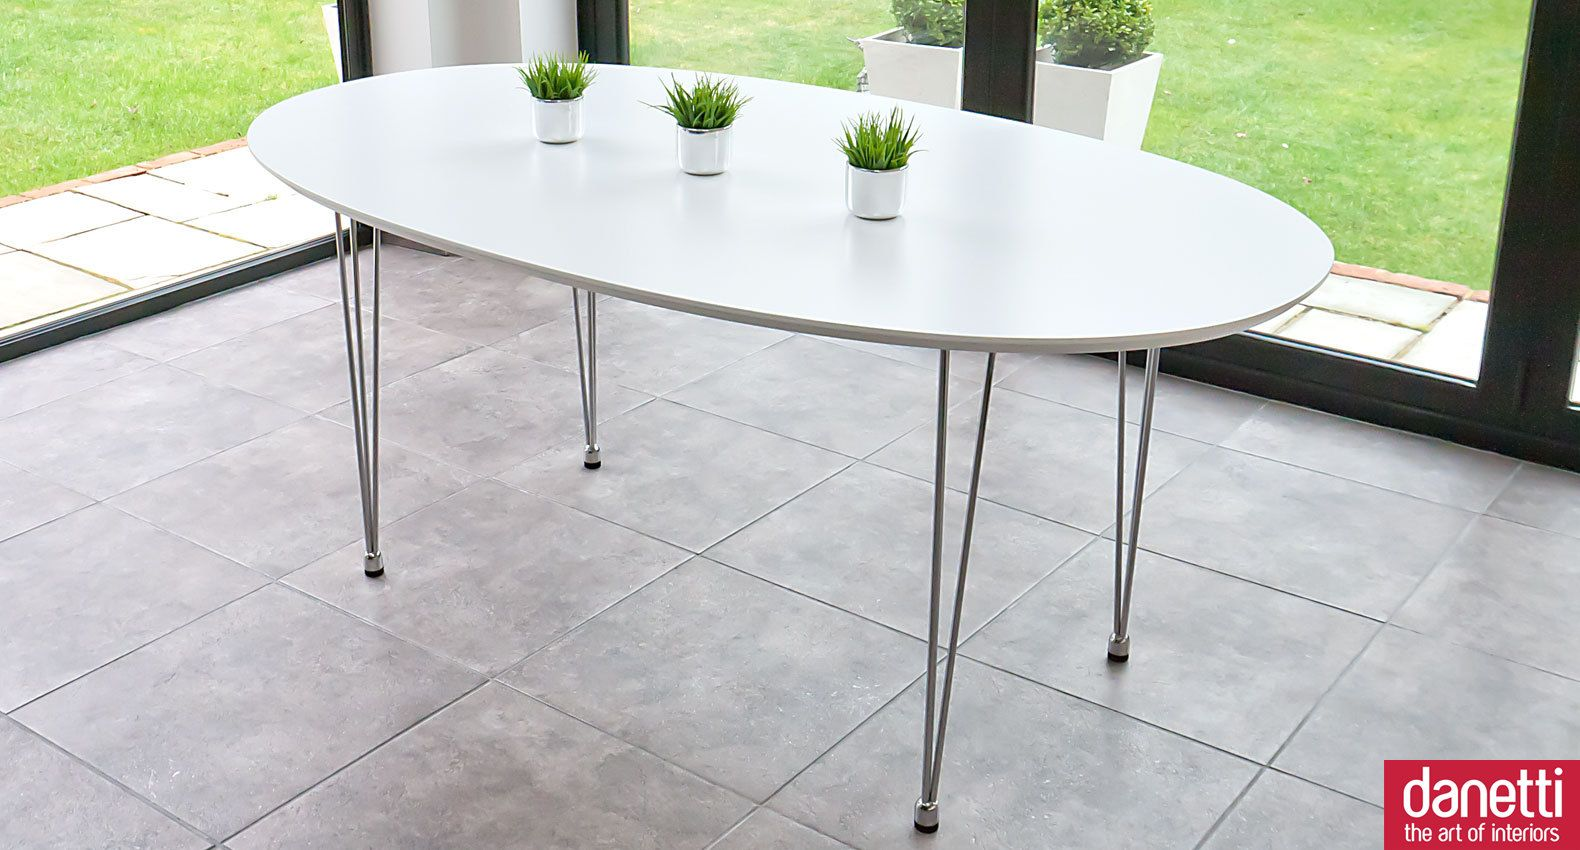 The Modern Ellie White Oval Dining Table Is A Minimalistu0027s Dream Table. The Fashionable  Table